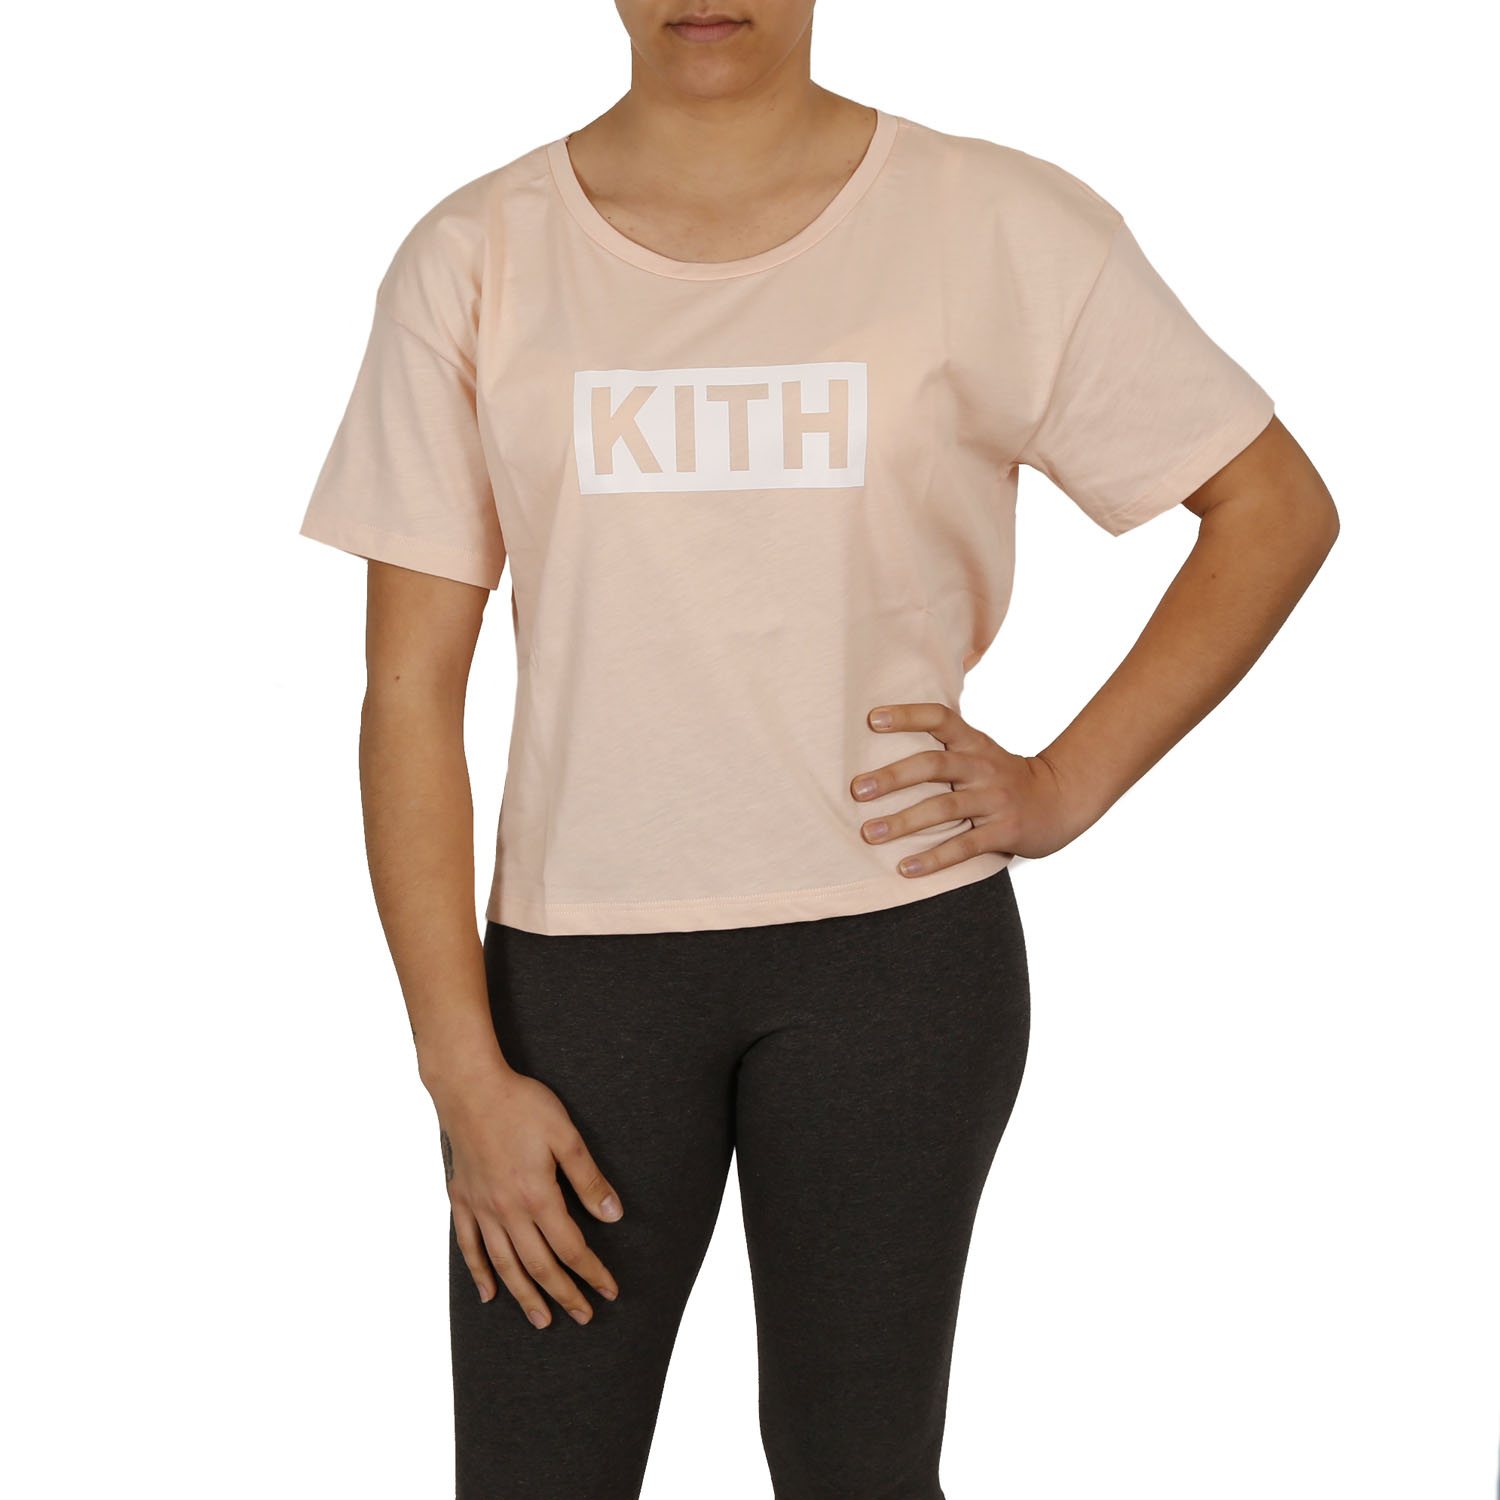 Kith T-Shirt W ( 18PEK102-173 ) ρούχα    γυναίκα   t shirts and μπλούζες